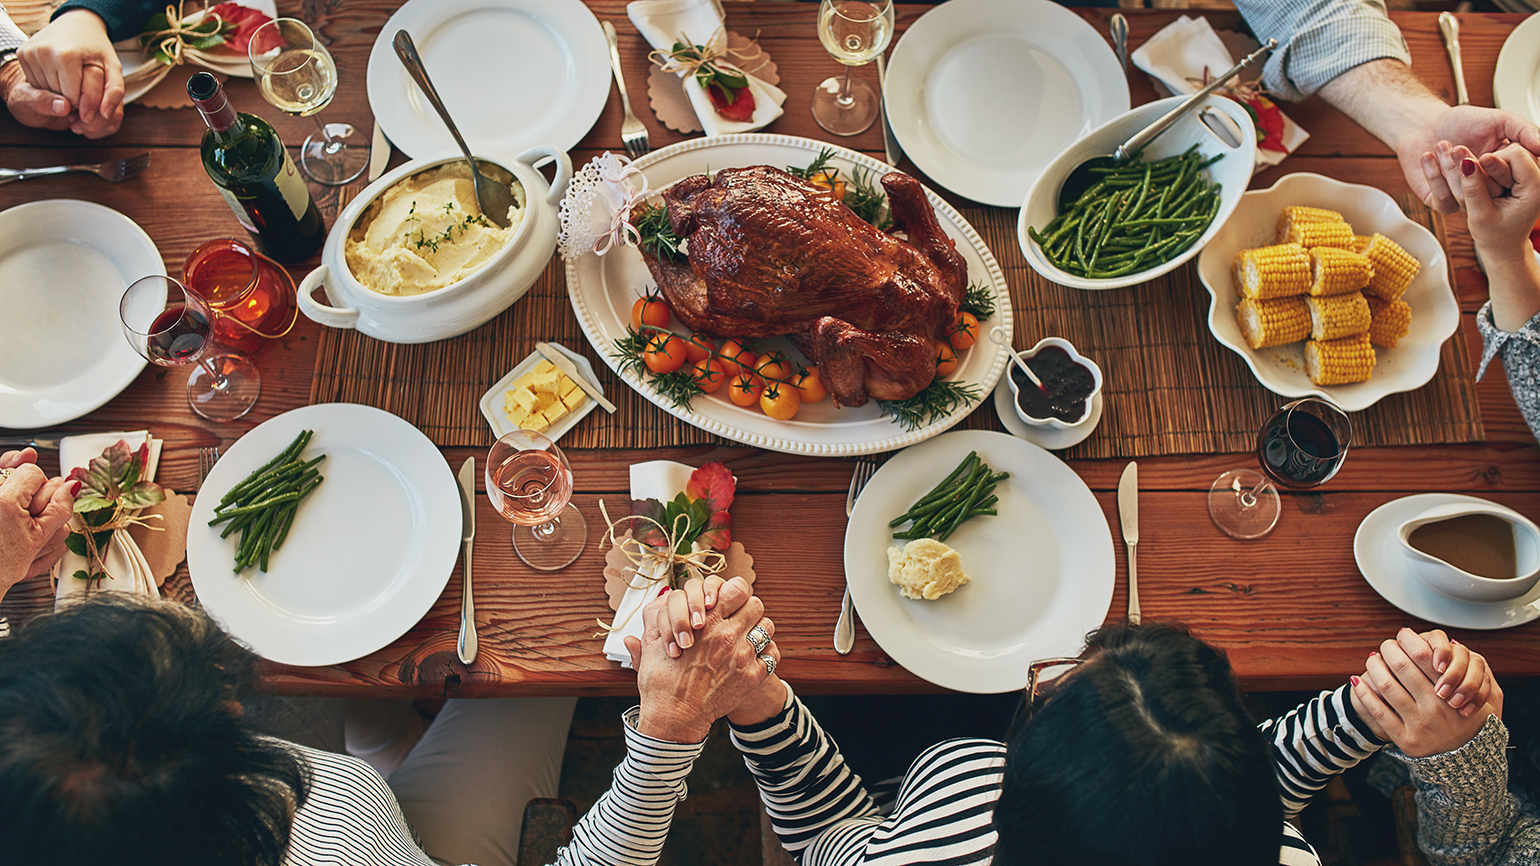 A family holds hands in prayer at the Thanksgiving dinner table